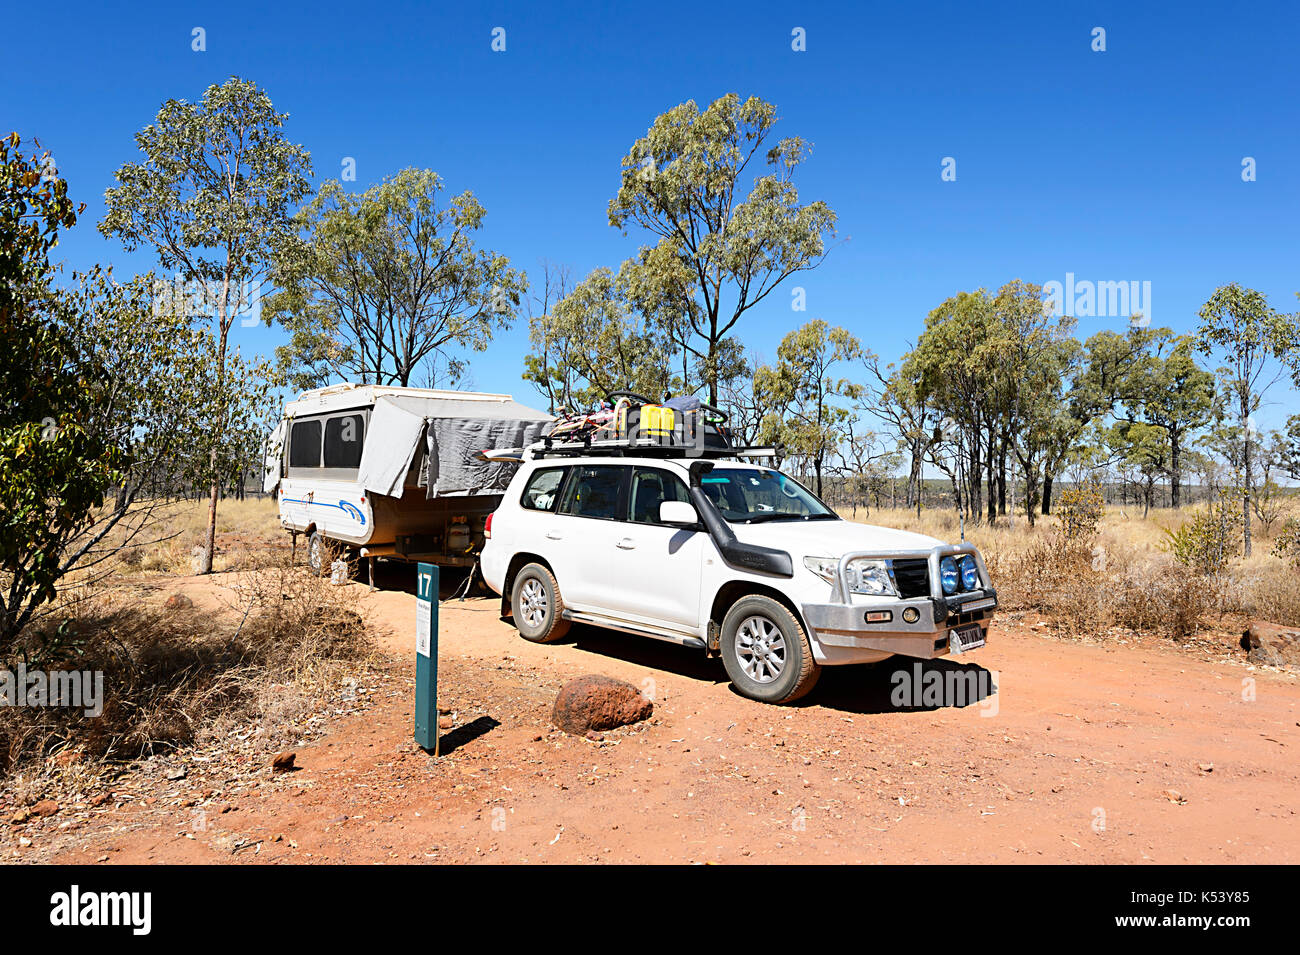 A 4x4 Car Towing An Off Road Camper Trailer Bush Camping In Porcupine Stock Photo Alamy